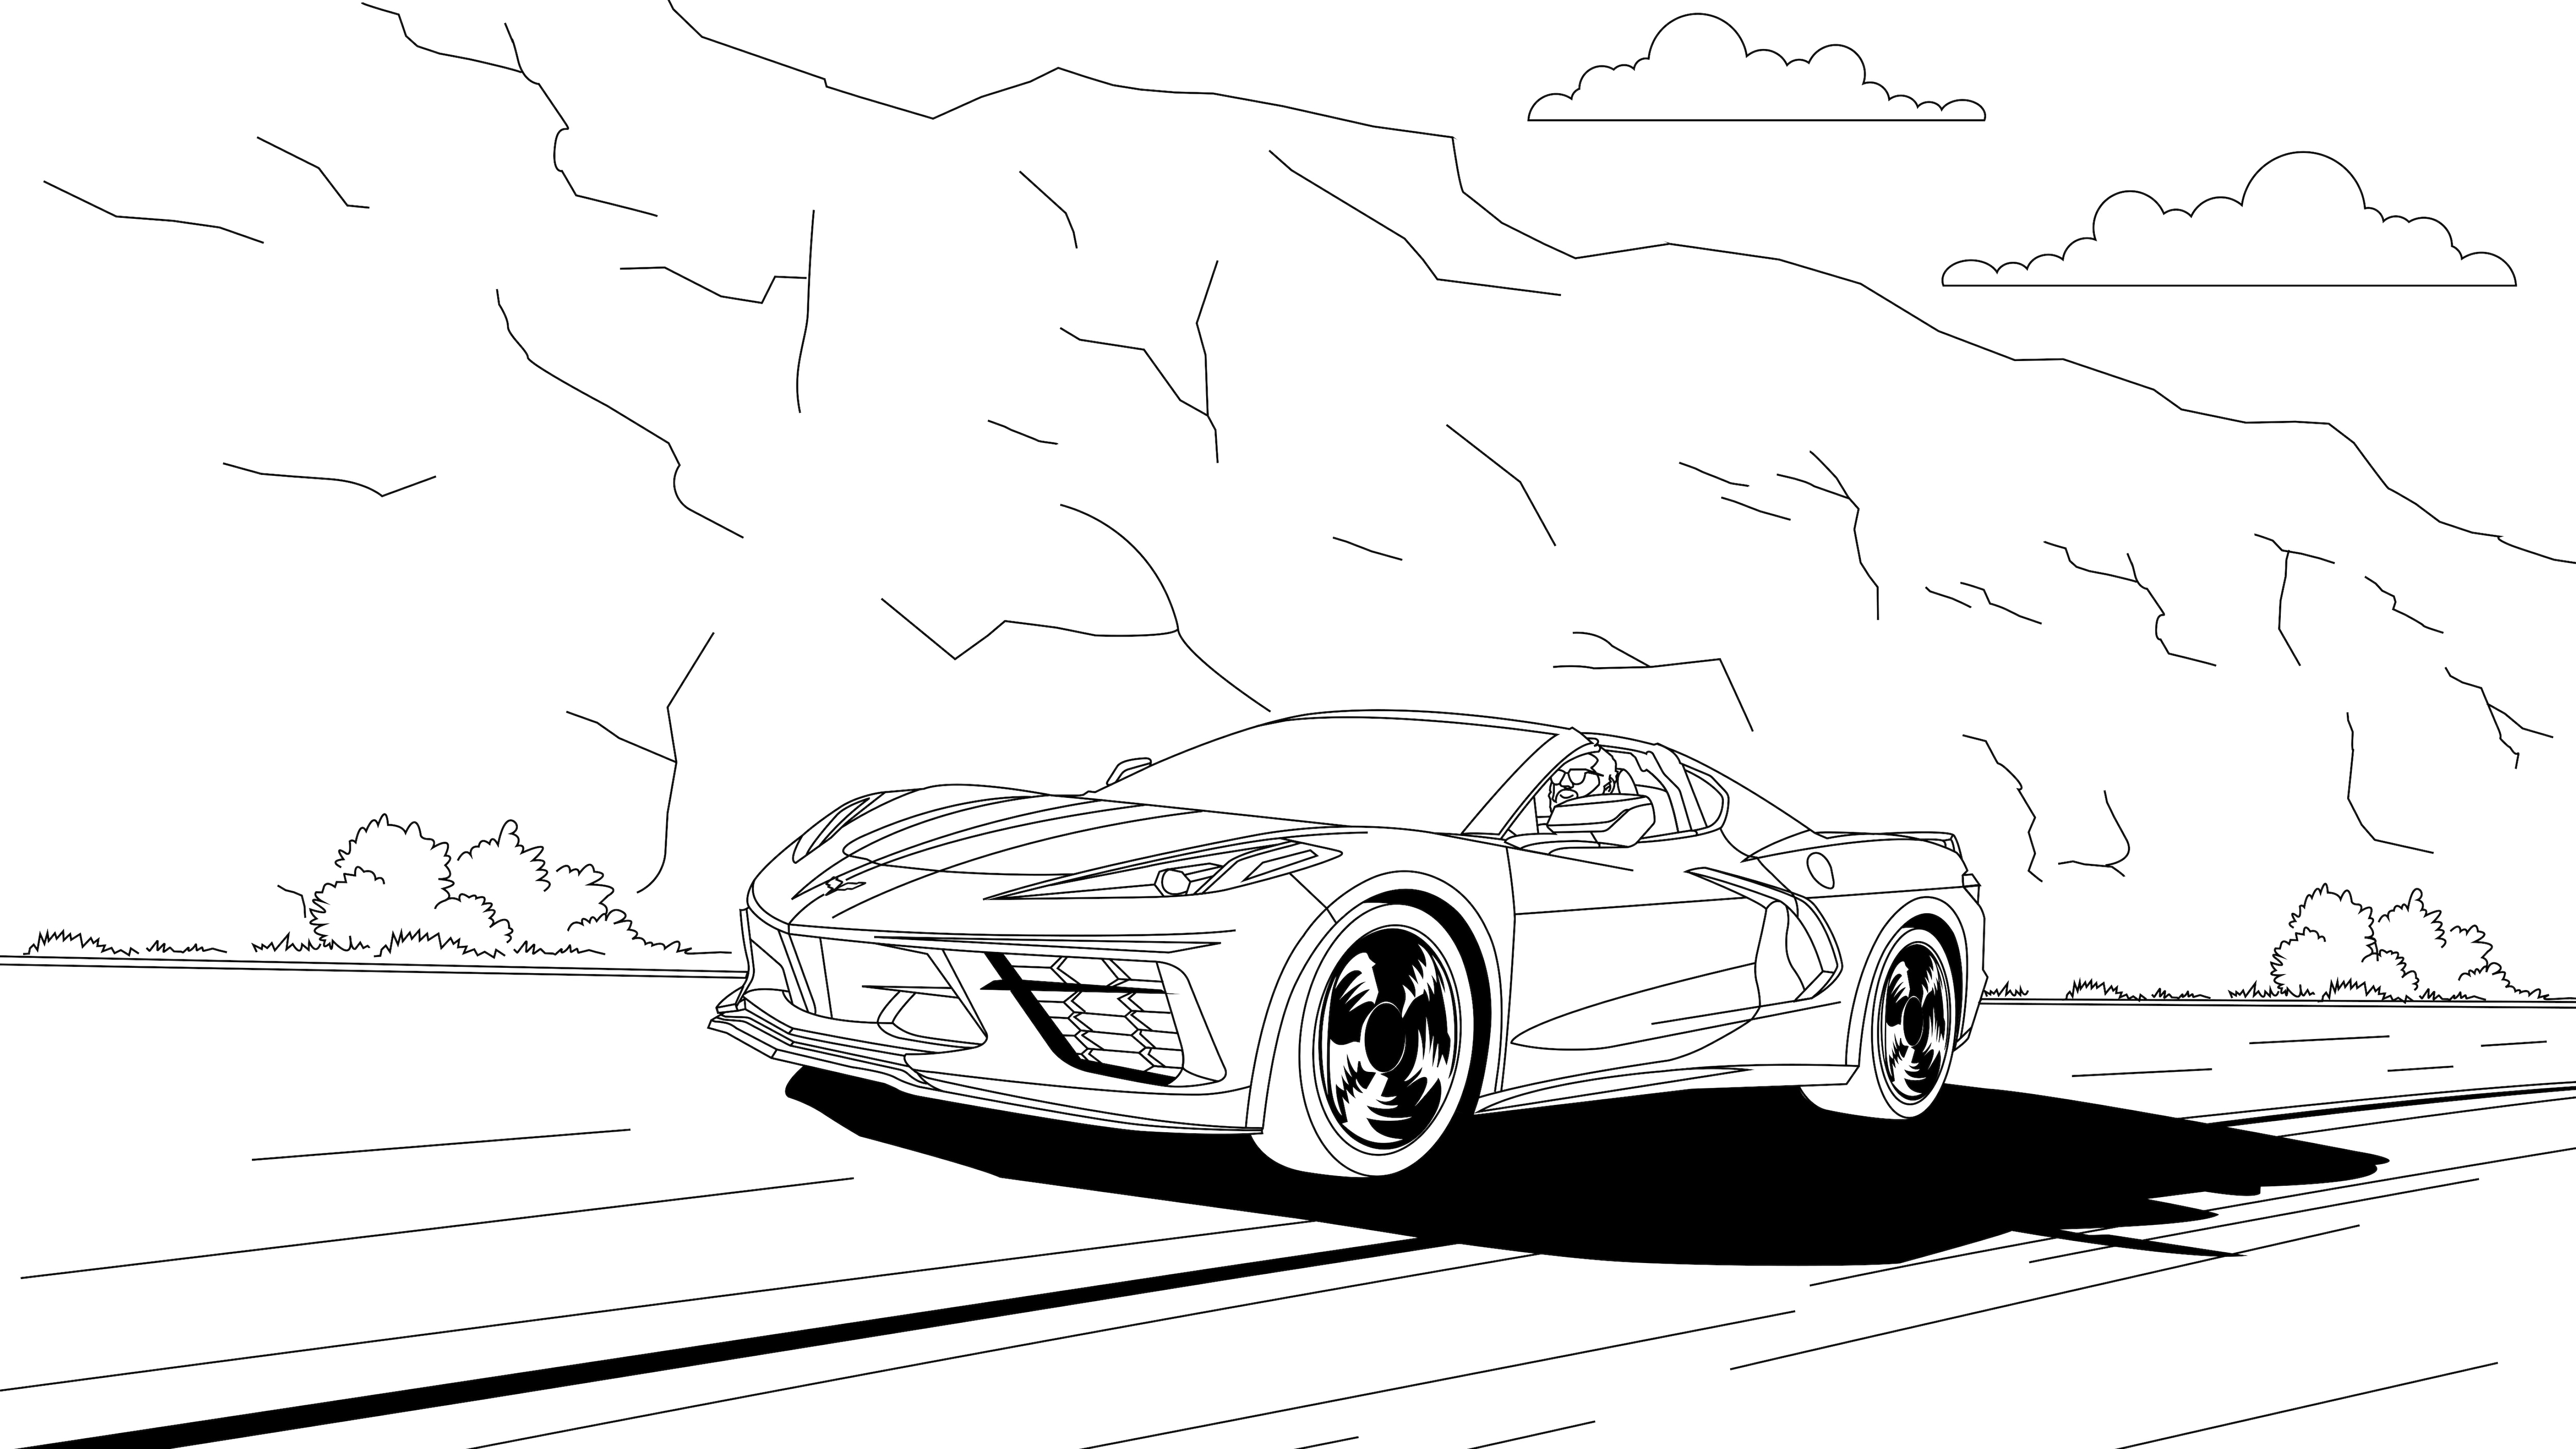 Lovely Cars 2 Coloring Pages Flower Coloring Pages Druckfertig Of ... | 2813x5000